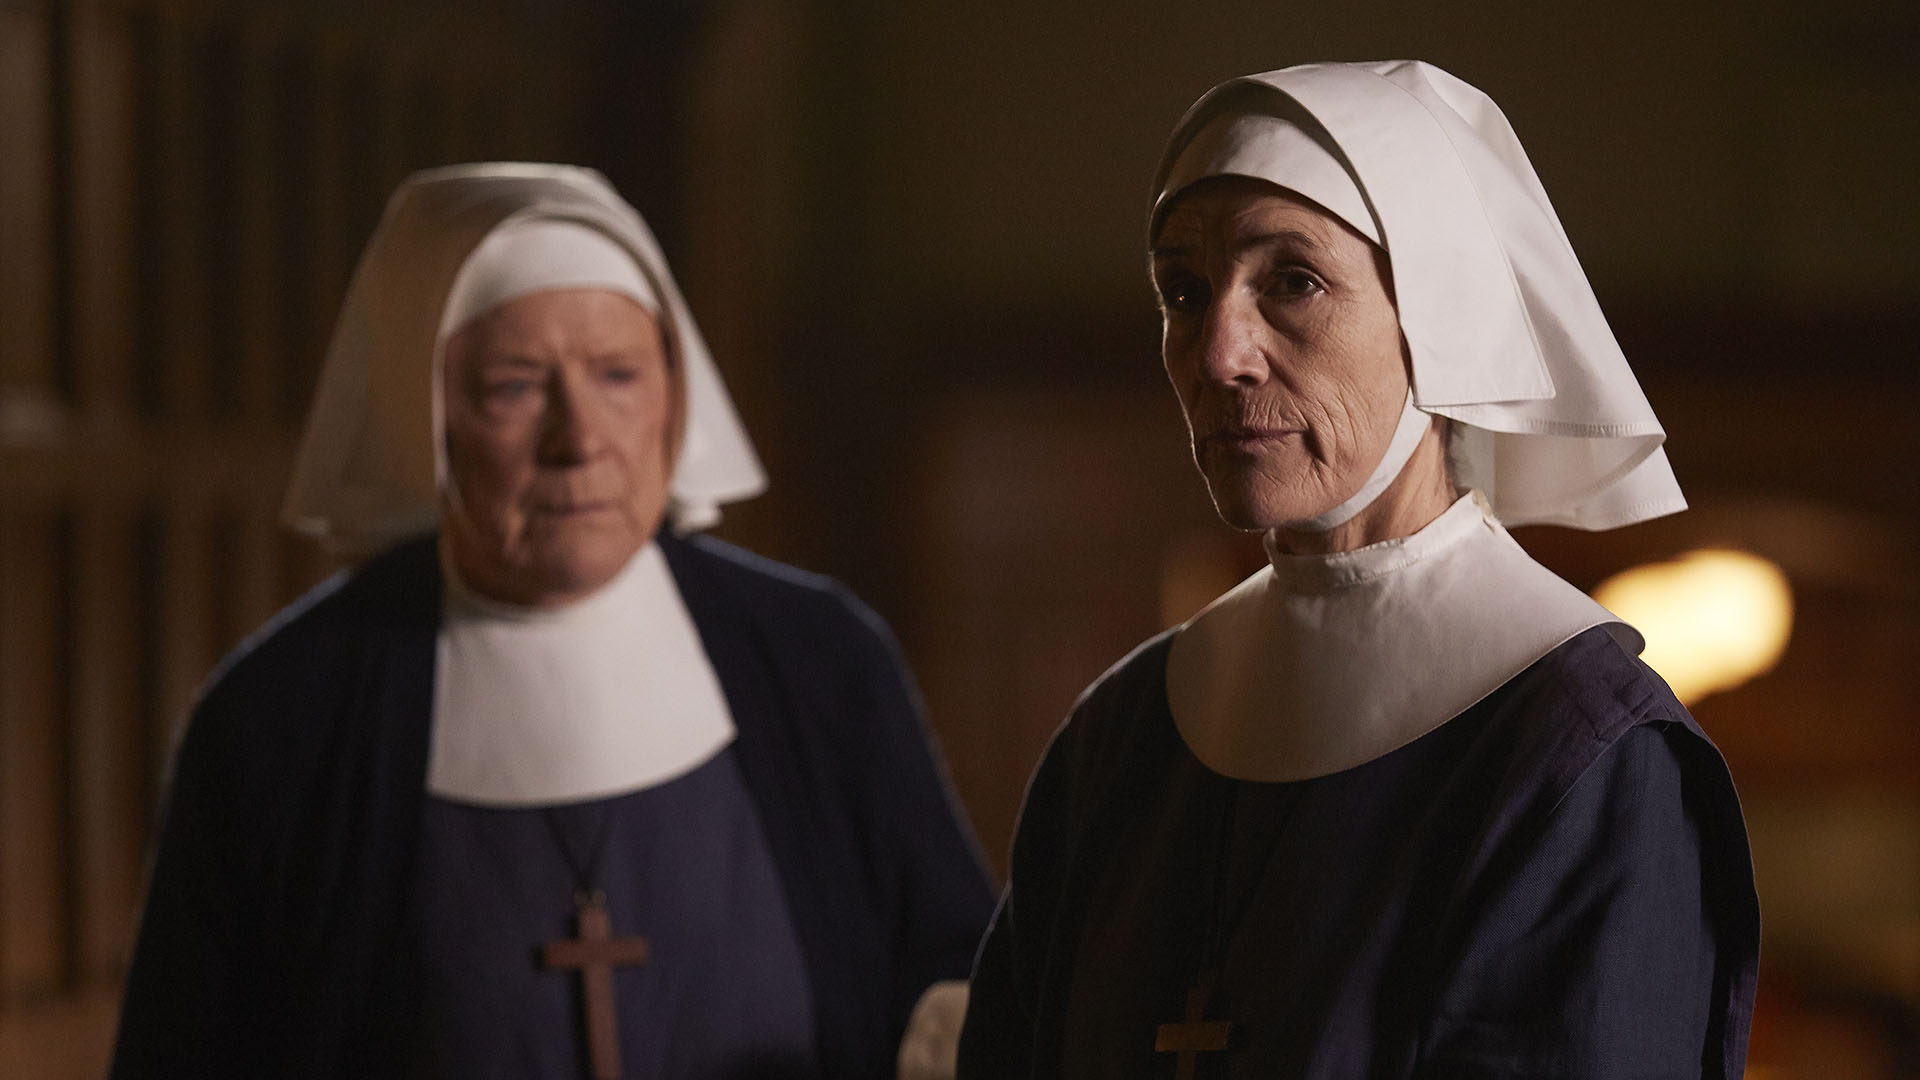 Sister Ursula, played by Harriet Walters, in a scene from Season 6.